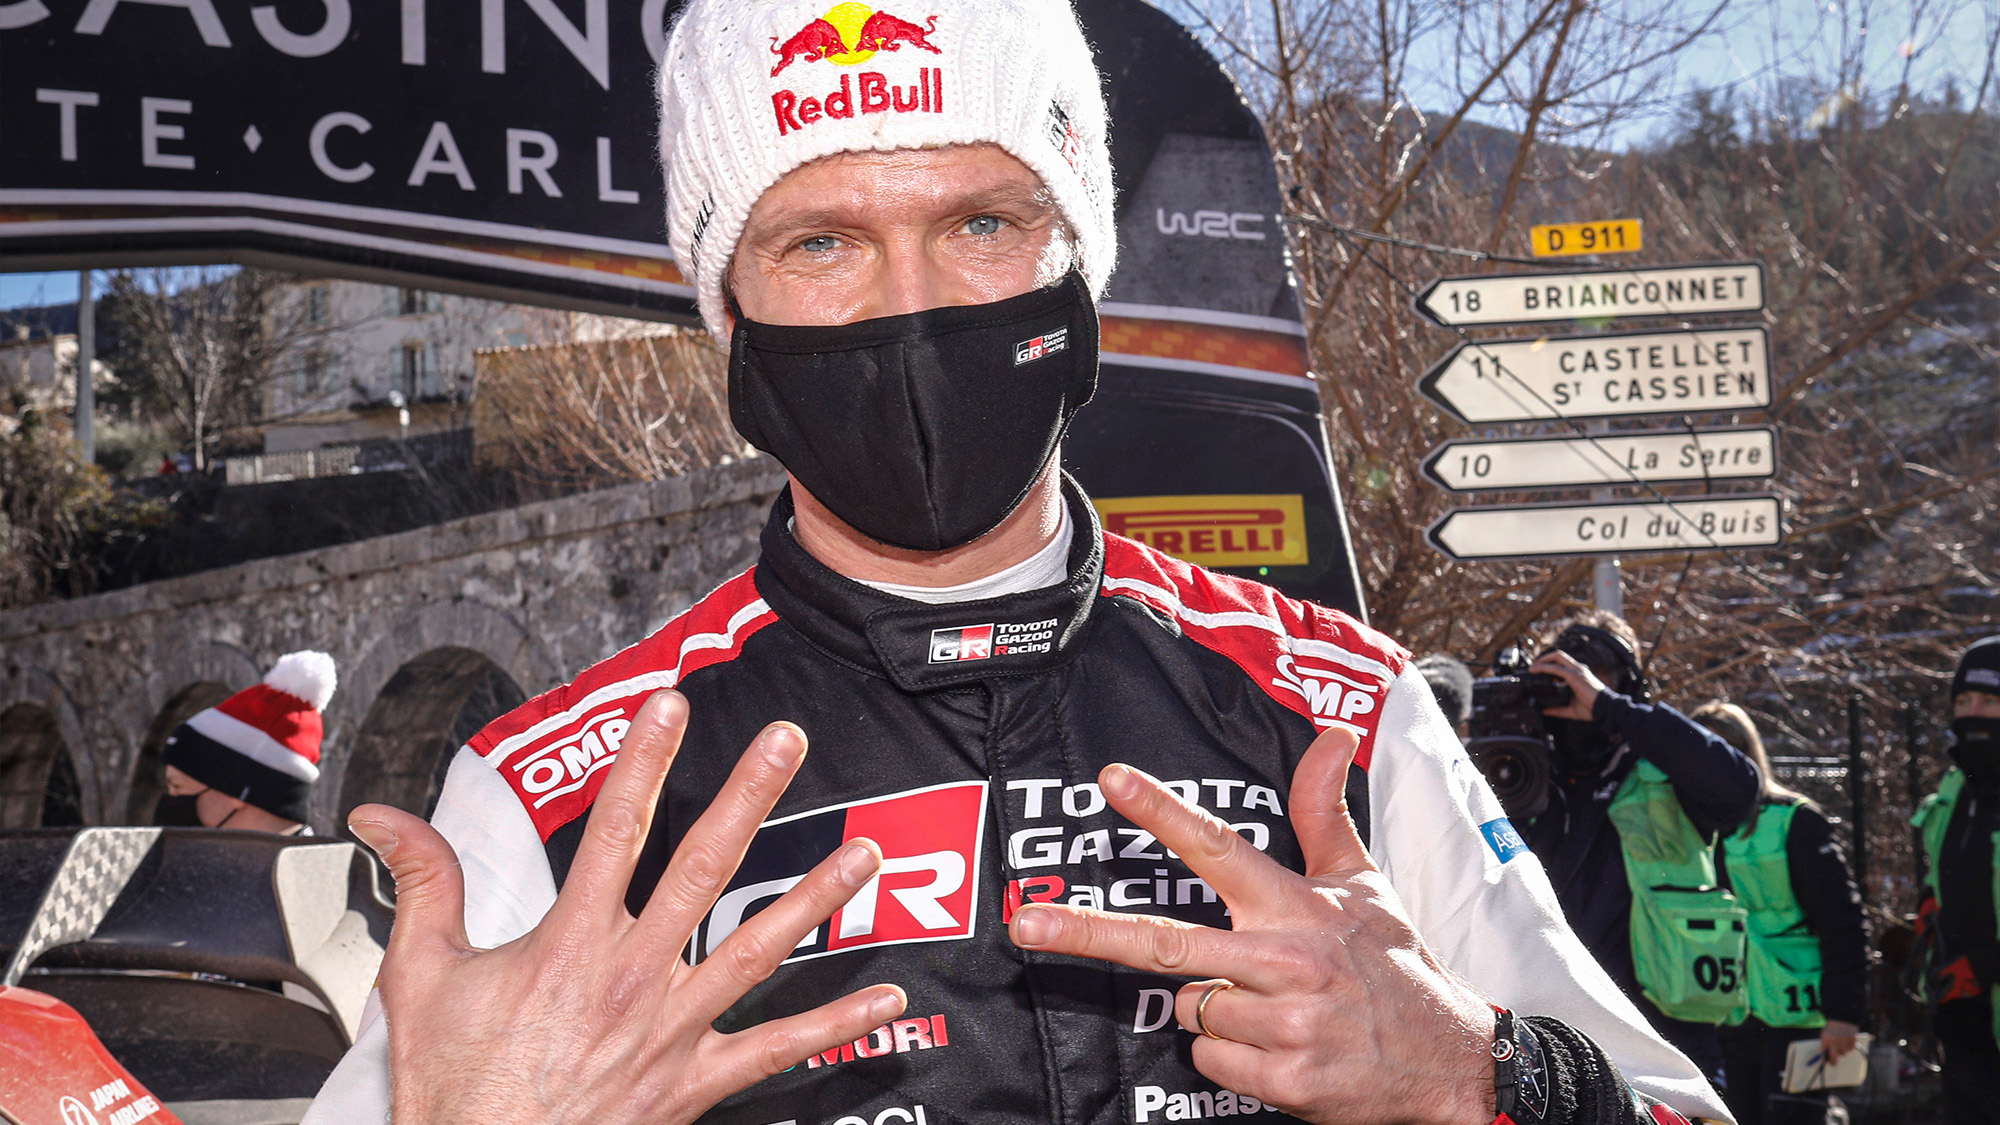 Ogier bounces back to claim record eighth Monte Carlo Rally win in 2021